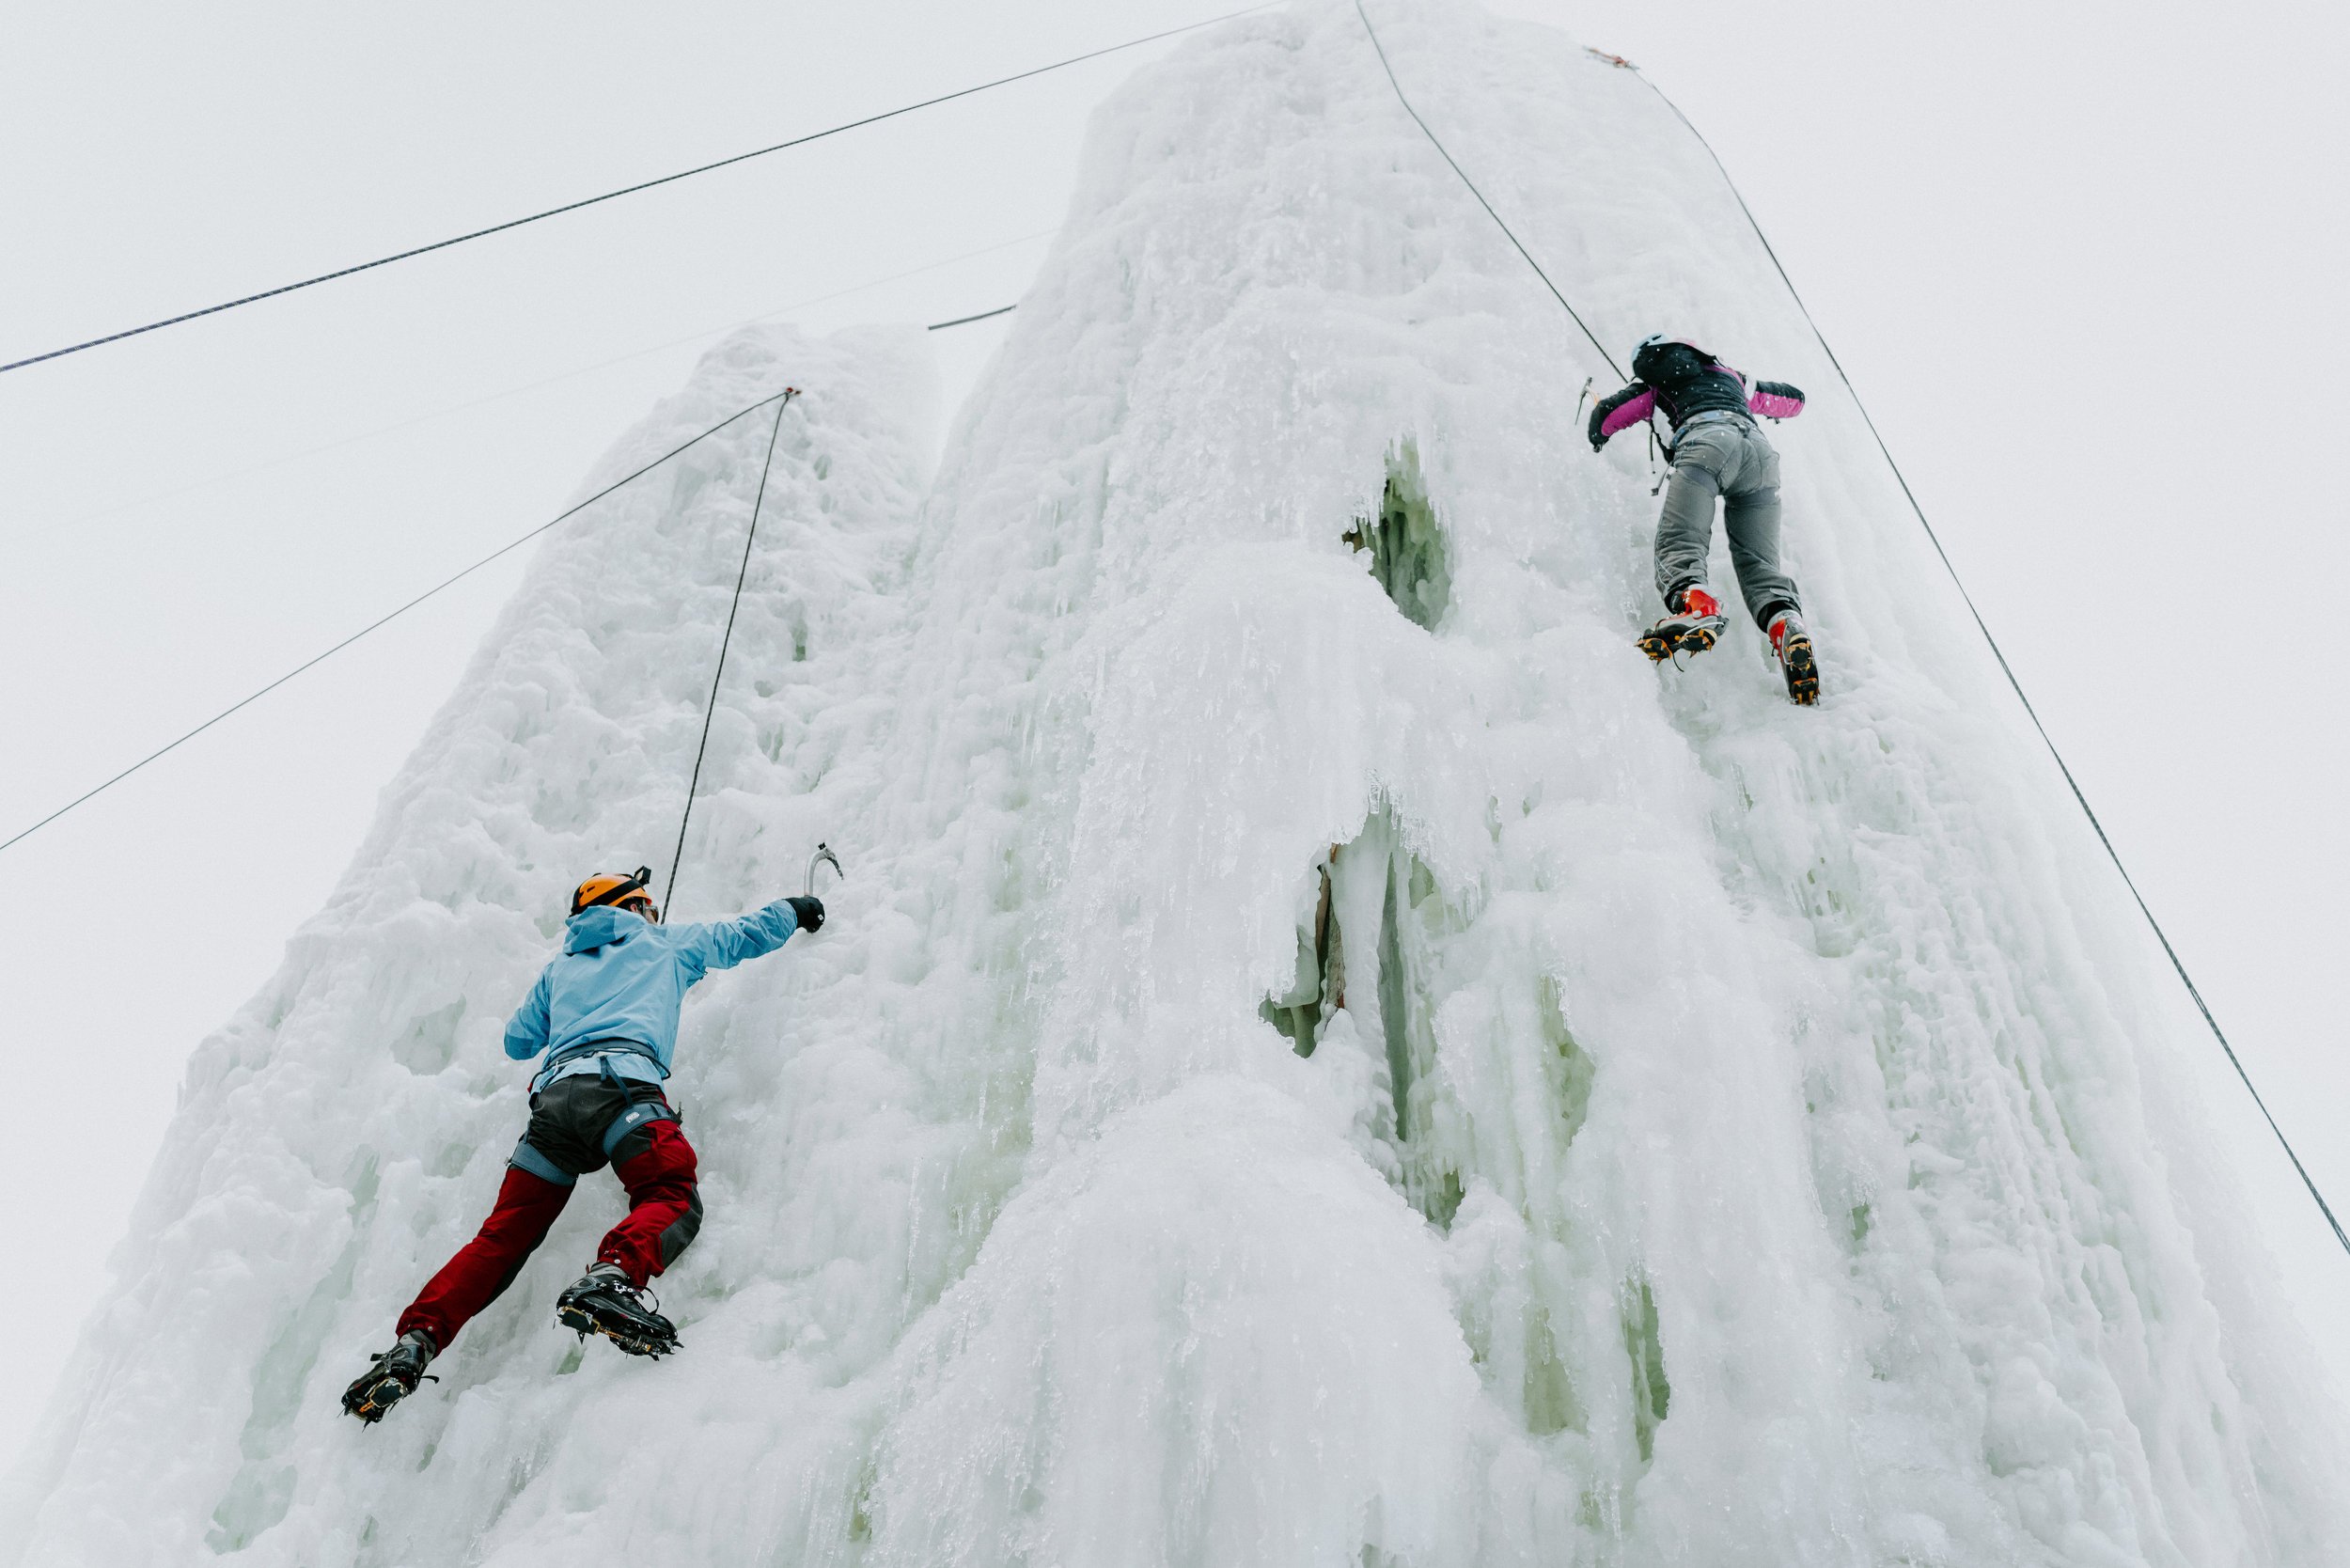 ICE CLIMBING:CLIMB, TREK, AND ZIP TOUR - The Yukon-famous climb, trek, and zip tour.Use ice axes and crampons to climb the ice towers. Explore the ice trek –a roped path with tunnels and bridges. And zipline from the top of the towers.Time: 2.0 hoursCost: $105 including transportation